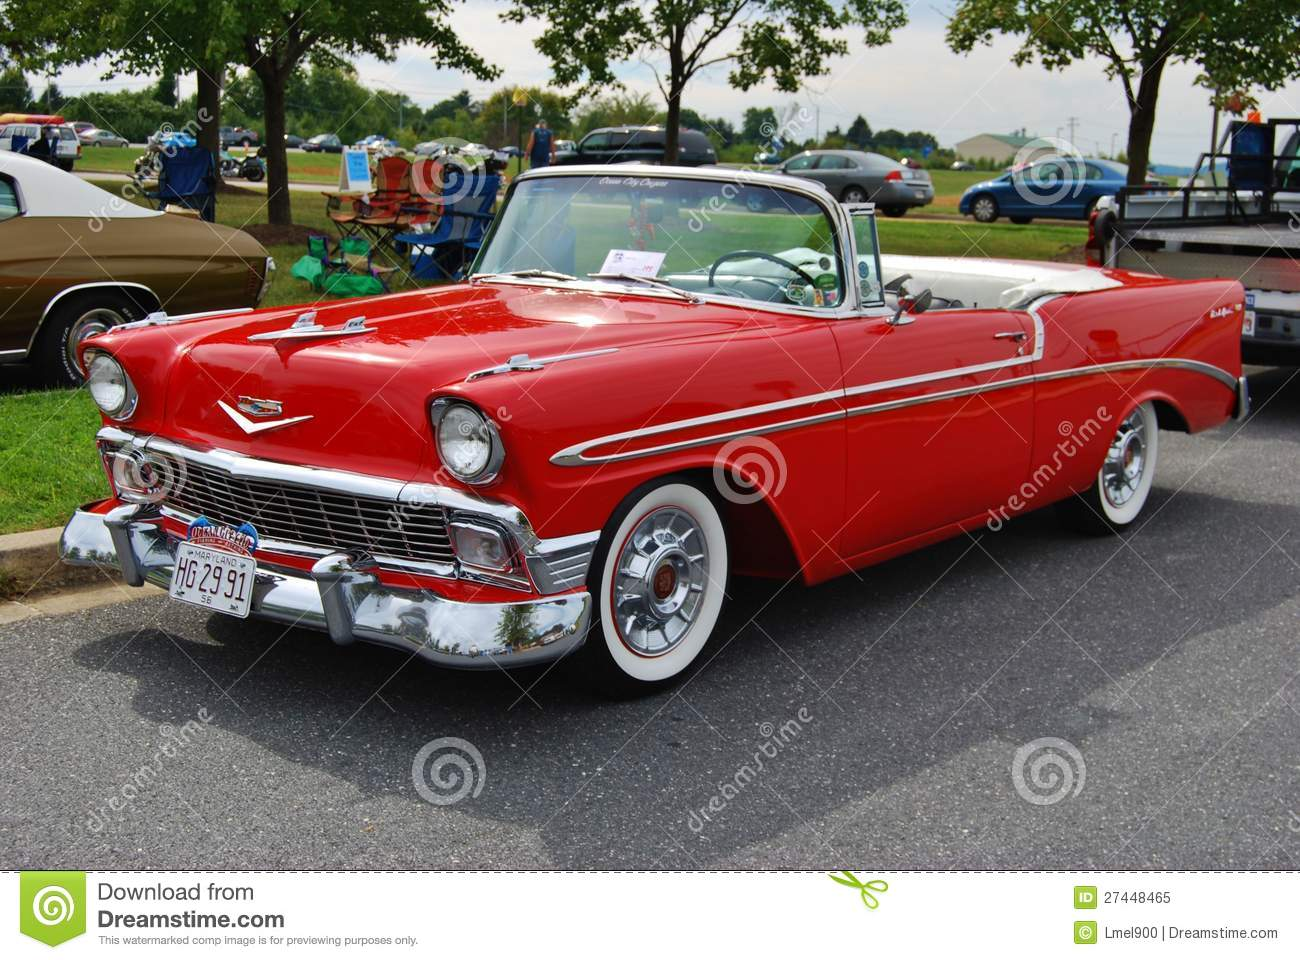 1956 Convertible Chevrolet Bel Air Editorial Image - Image ...